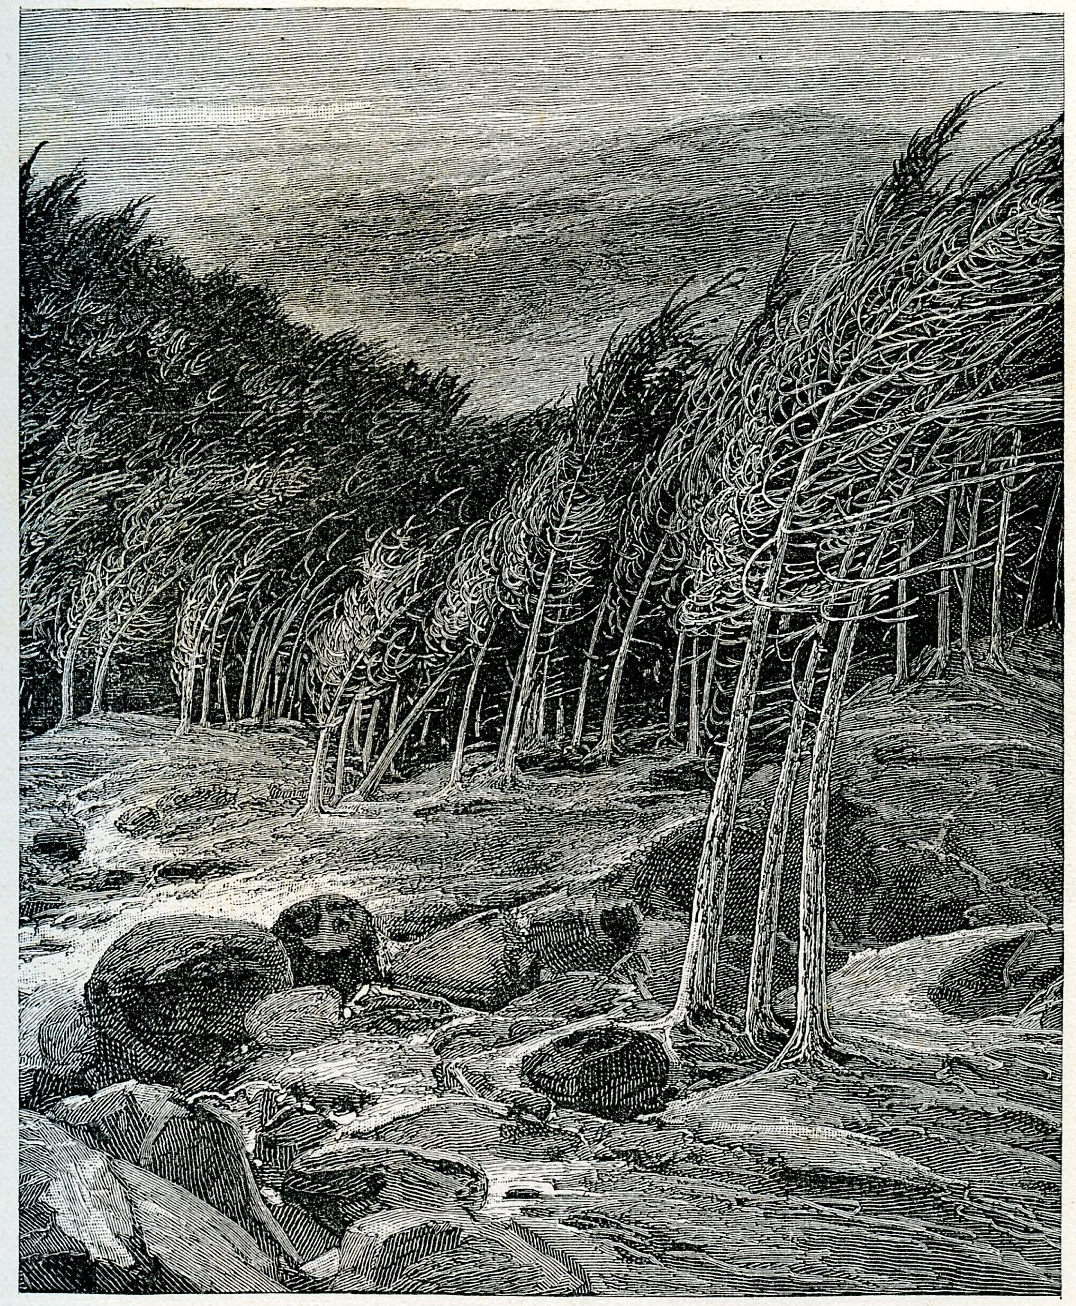 sketch by John Muir